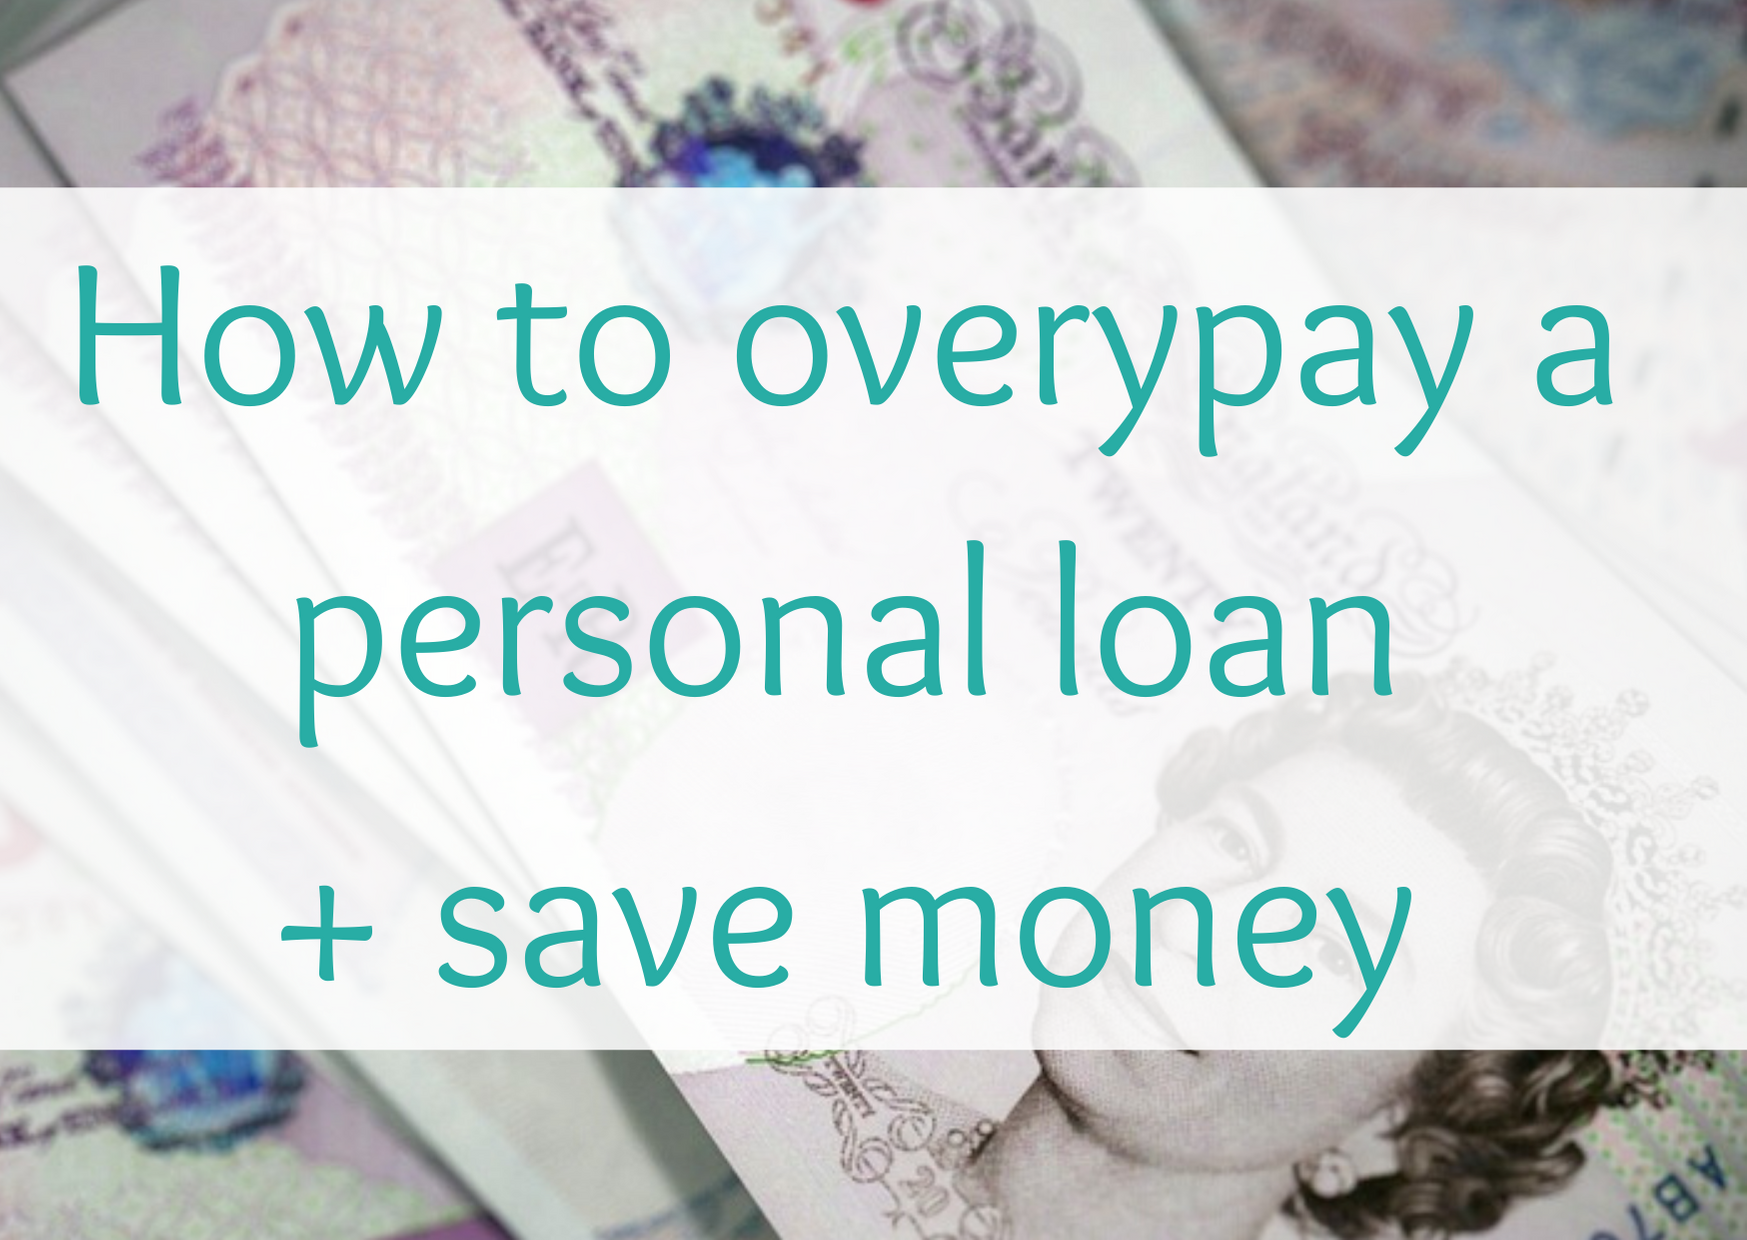 How to overypay a personal loan + save money